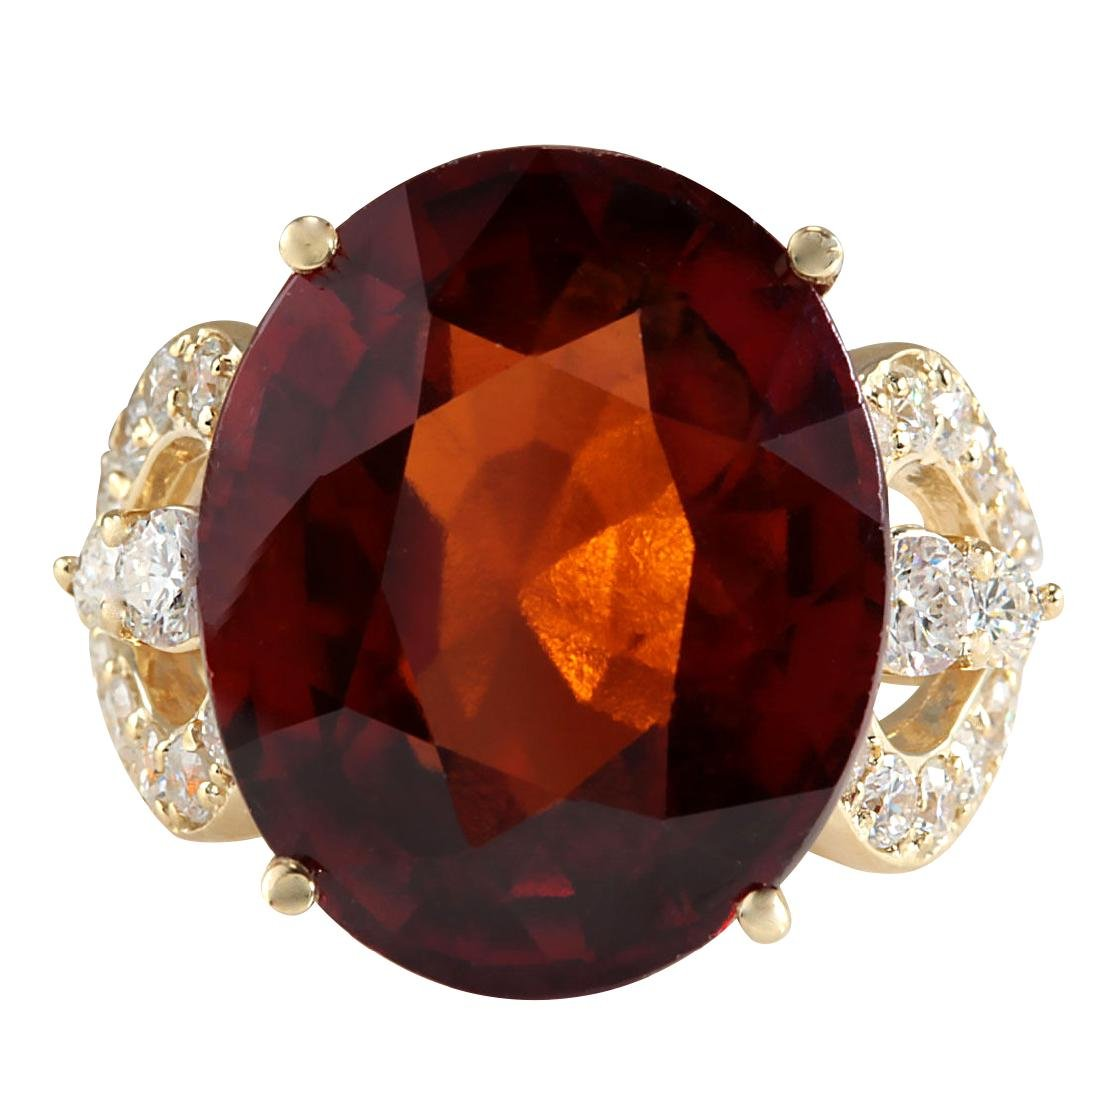 19.58CTW Natural Hessonite Garnet And Diamond Ring In